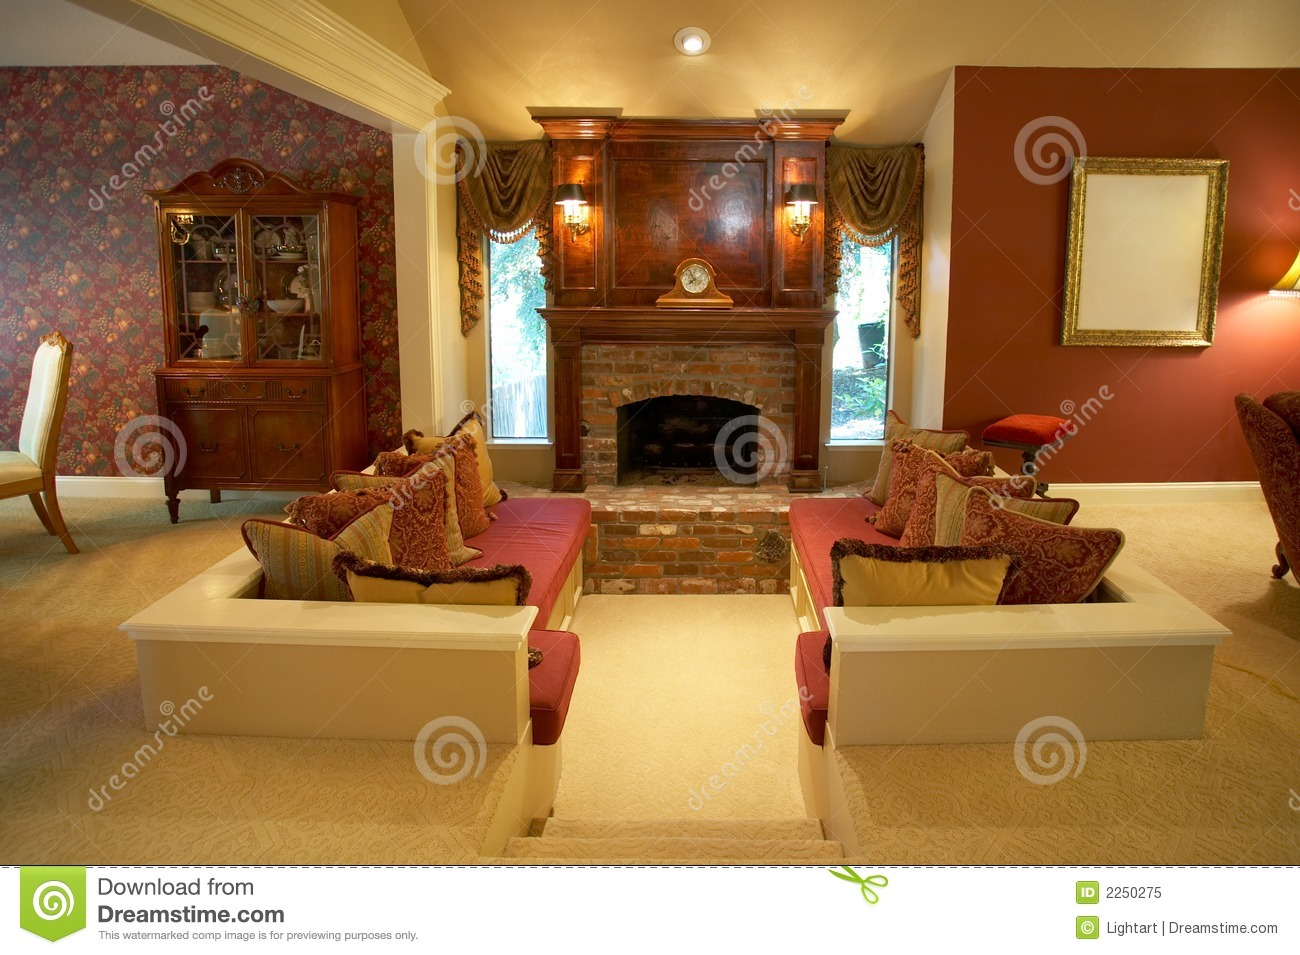 Warm living room colors interior decorating las vegas for Interior design living room warm